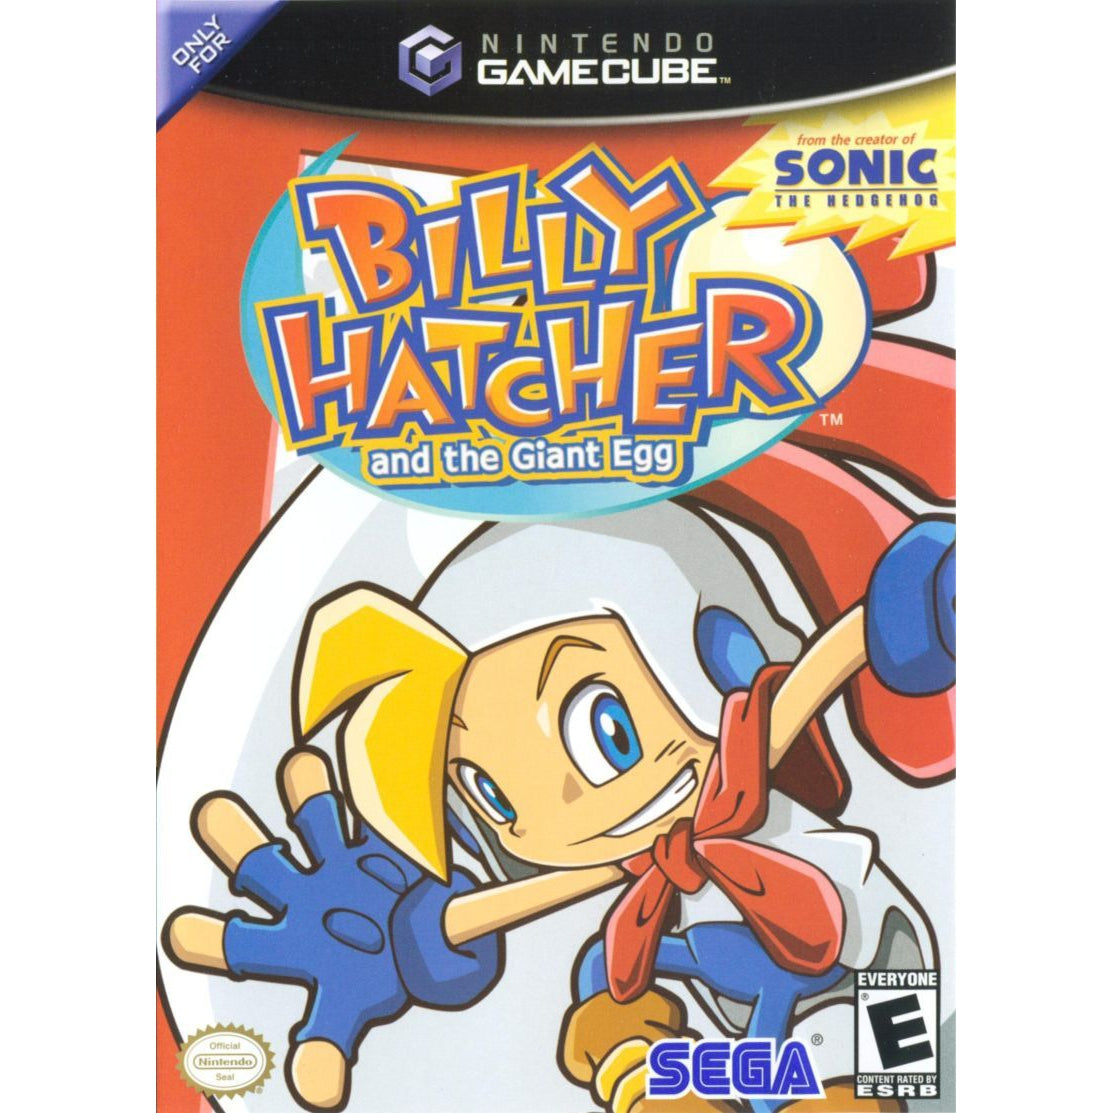 Billy Hatcher and the Giant Egg - GameCube Game Complete - YourGamingShop.com - Buy, Sell, Trade Video Games Online. 120 Day Warranty. Satisfaction Guaranteed.